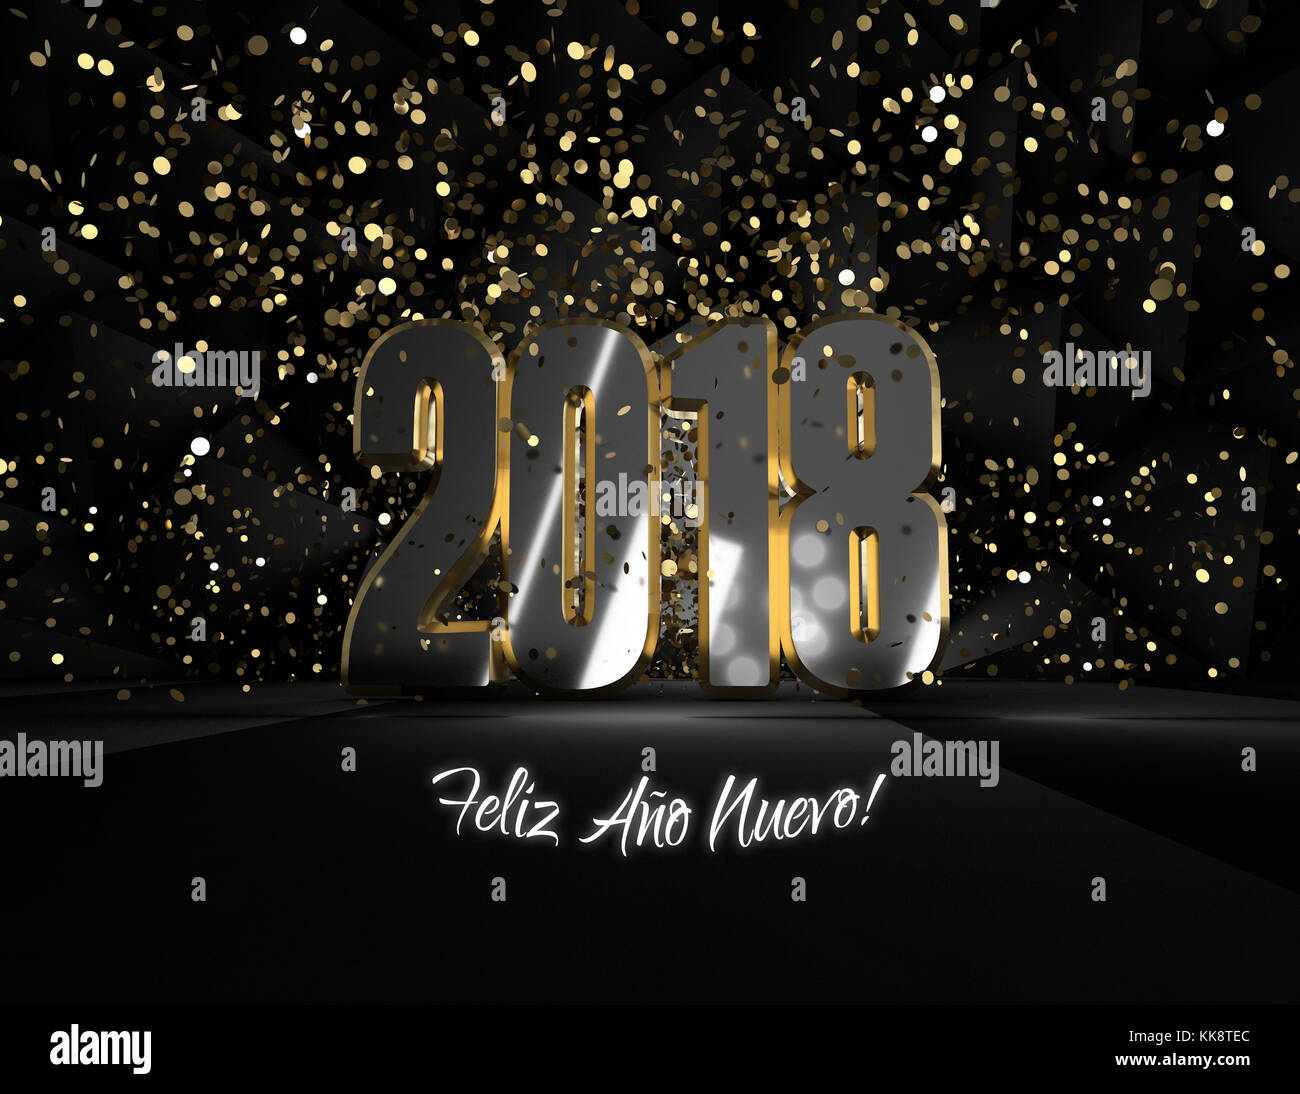 Dark and elegant postcard with the best wishes for the new year 2018 - Stock Image